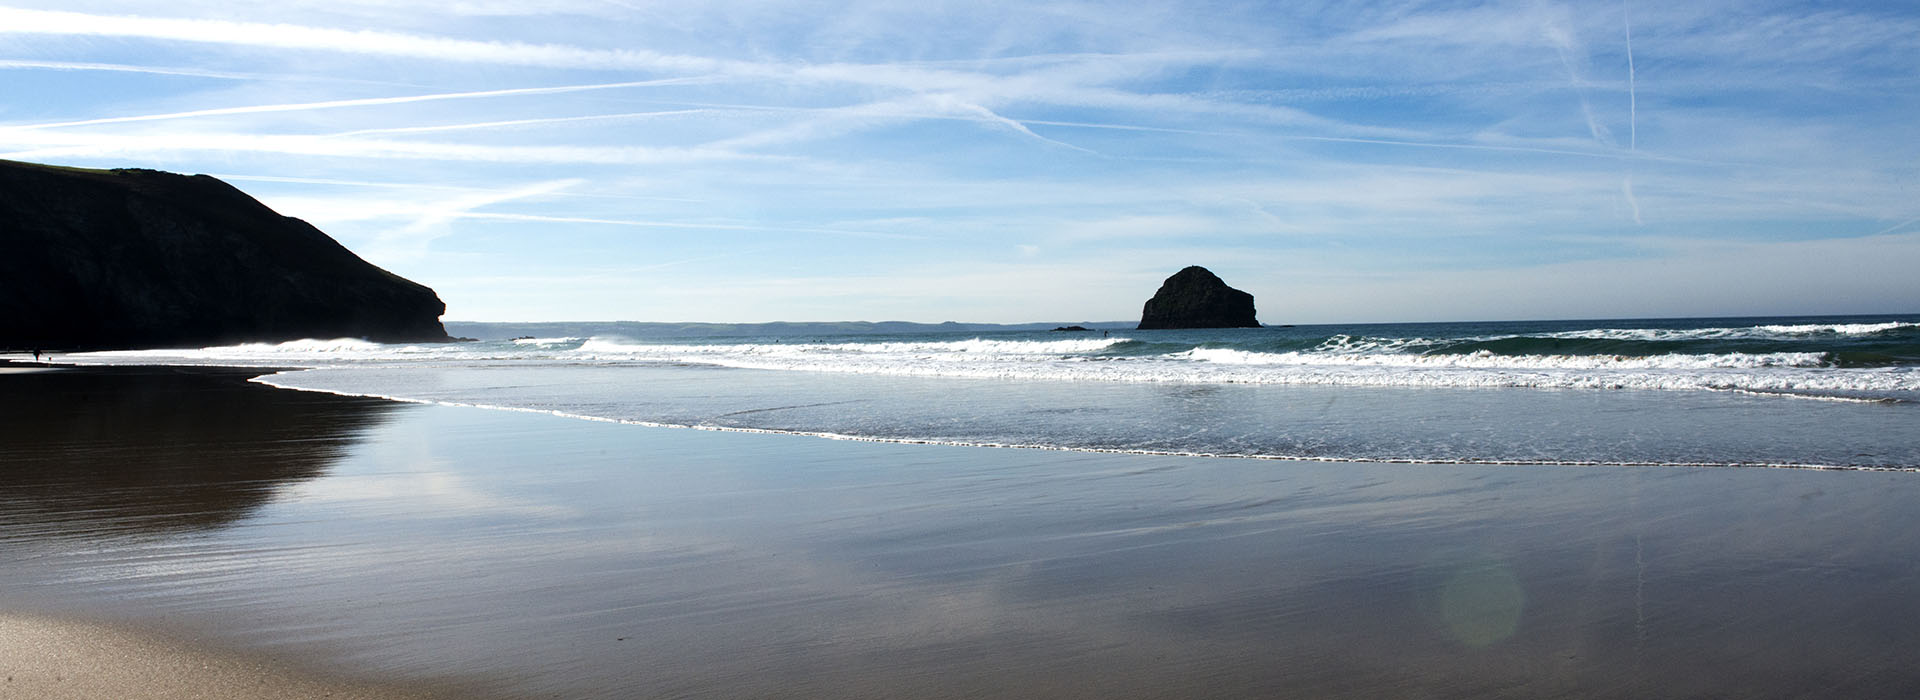 Trebarwith Strand, Cornwall with vapour trails in the sky